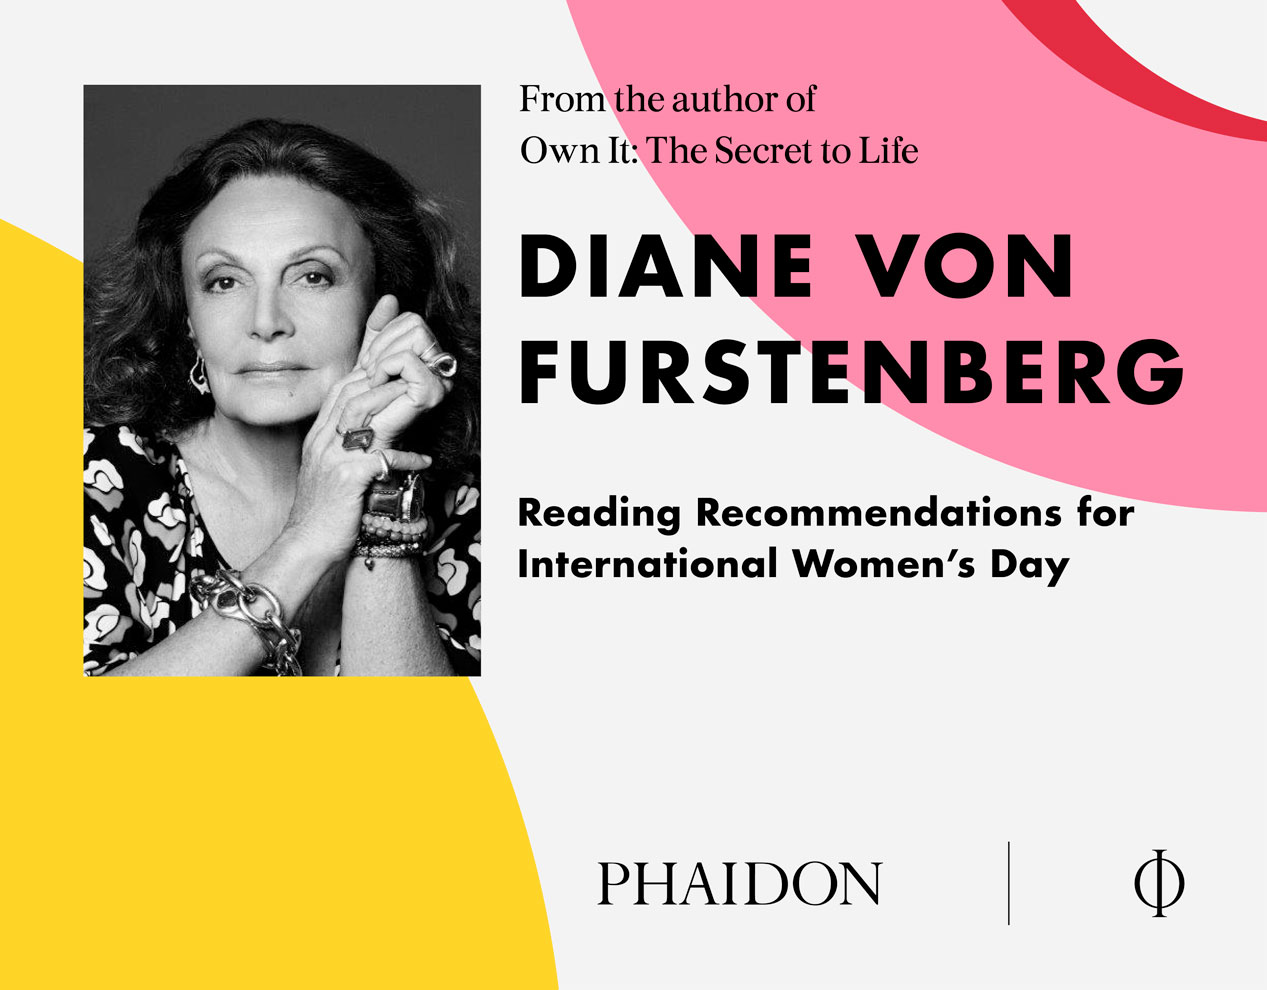 Take a look at Diane von Furstenberg's Reading Recommendations for International Women's Day